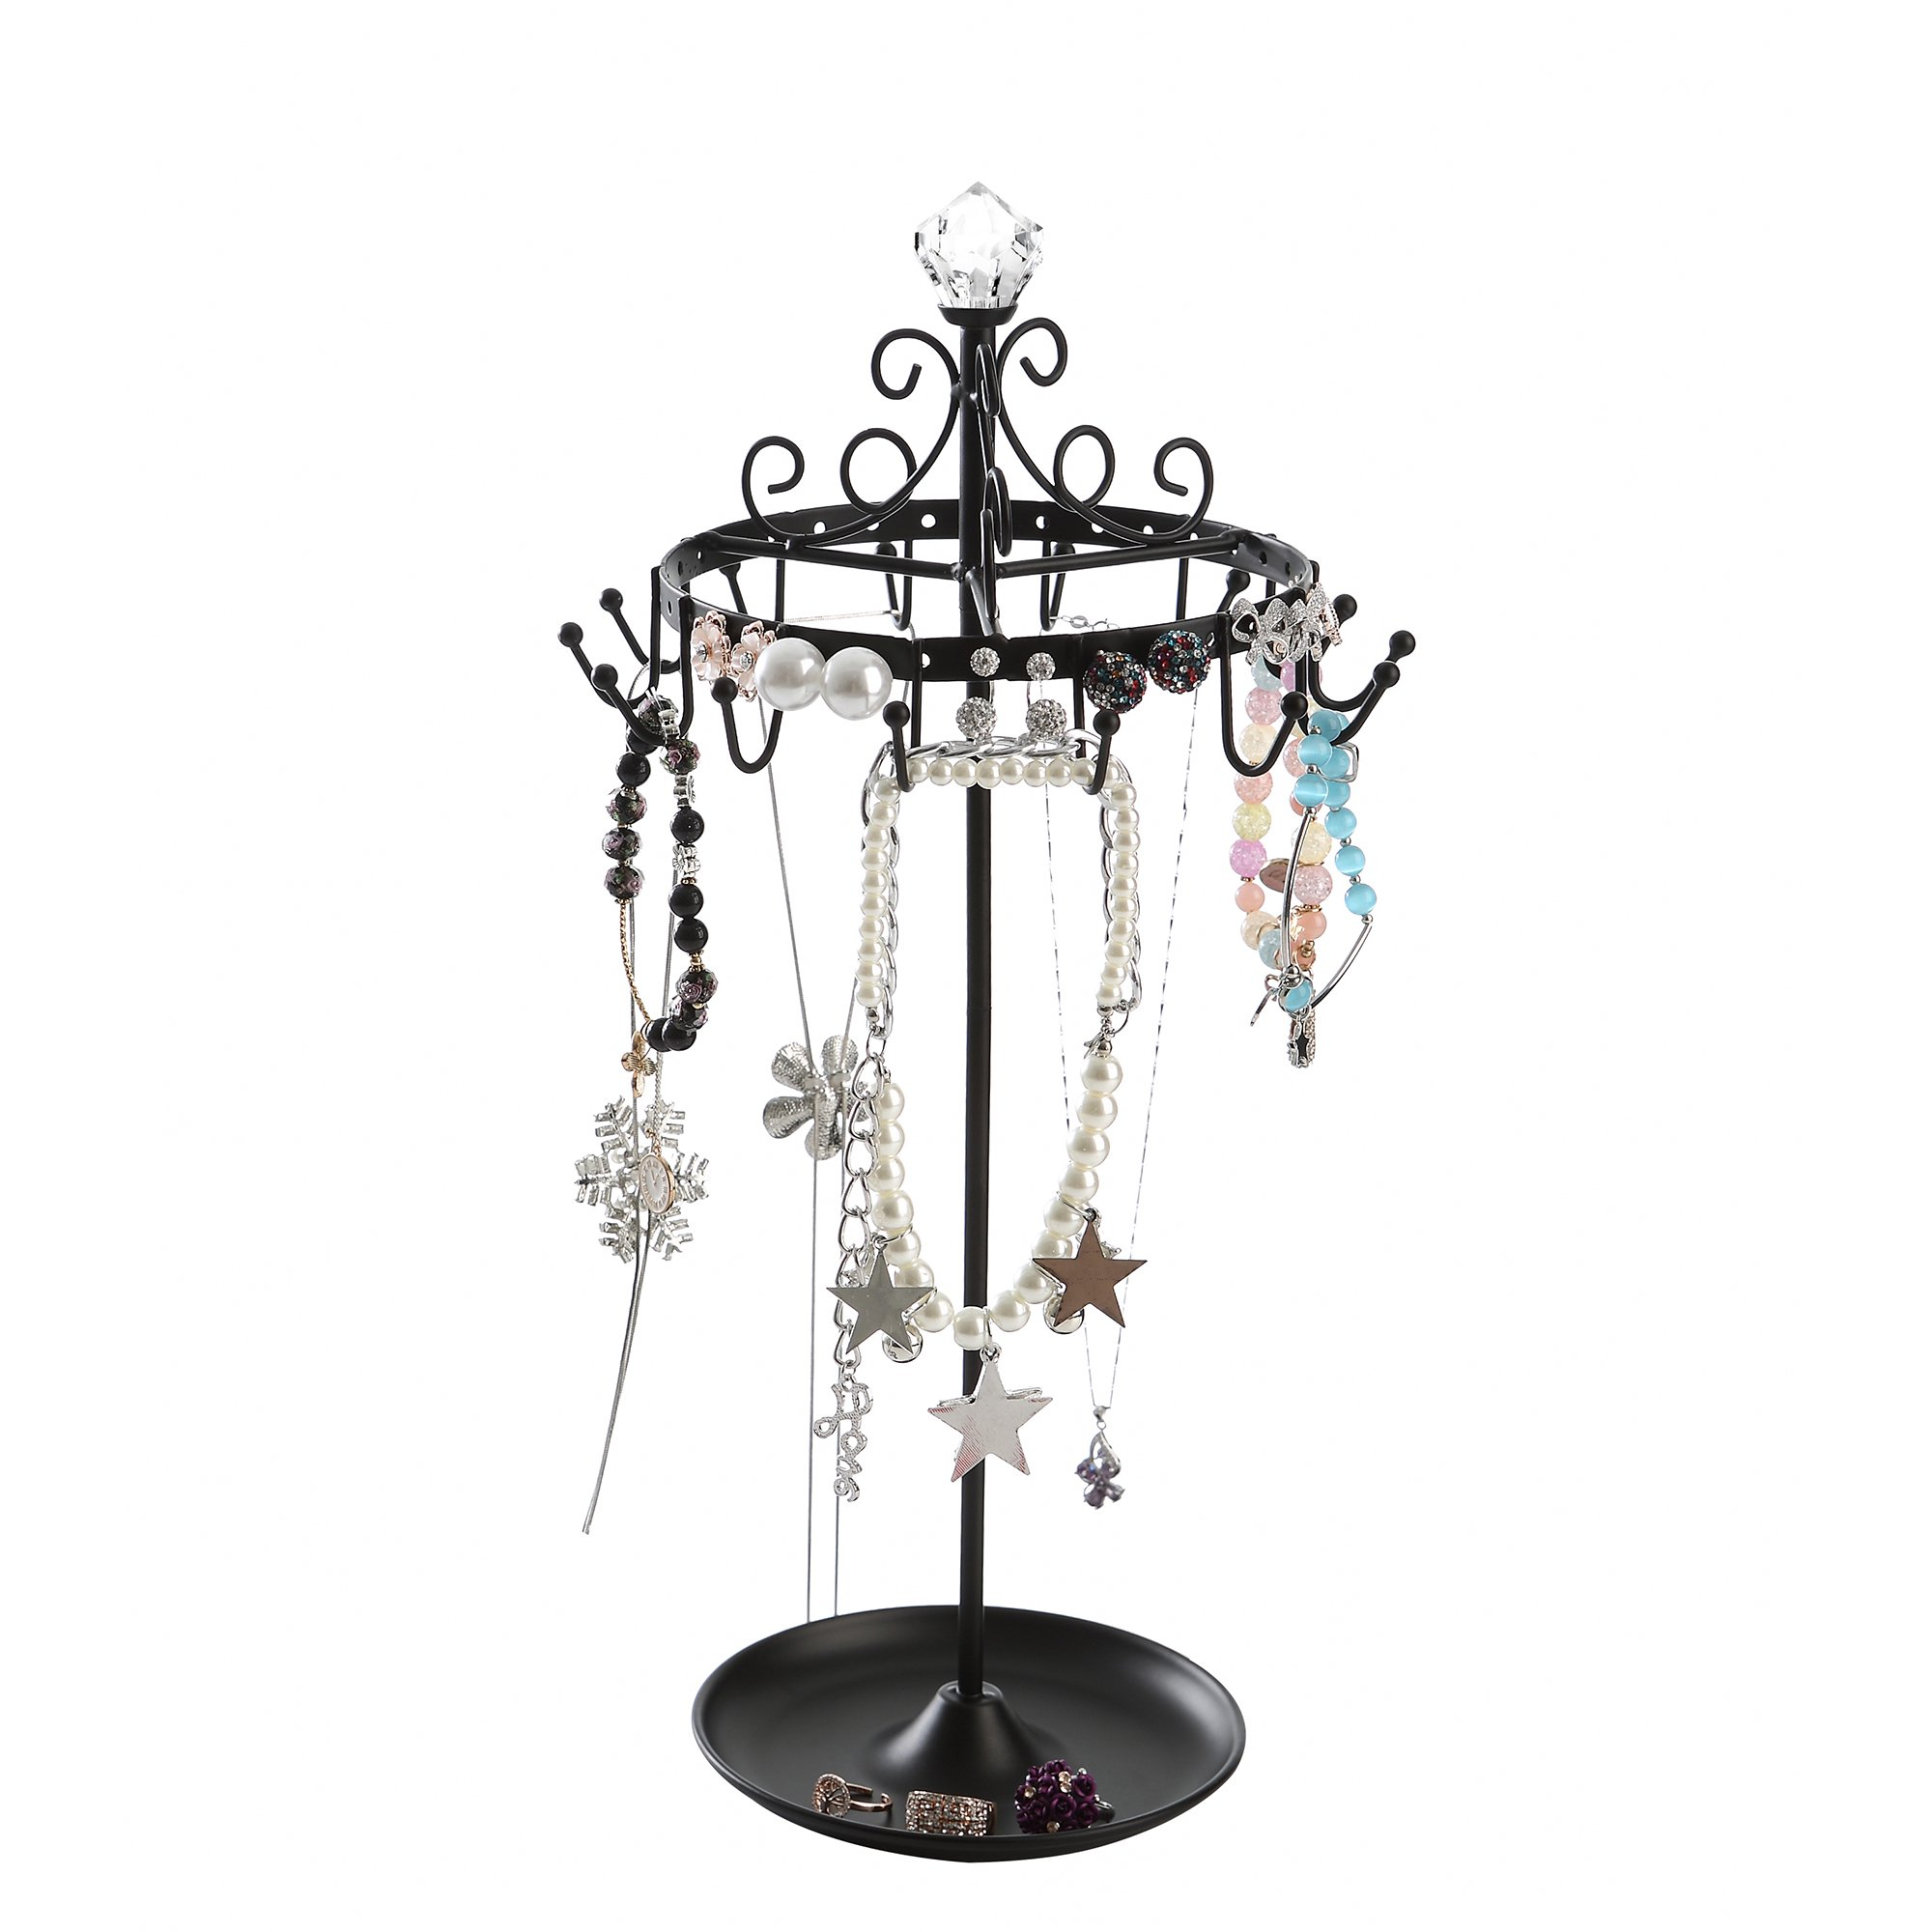 Giftway Black Rotating Jewelry Tree Organizer Stand w/ Ring Tray for Bracelet, Earrings, Necklace